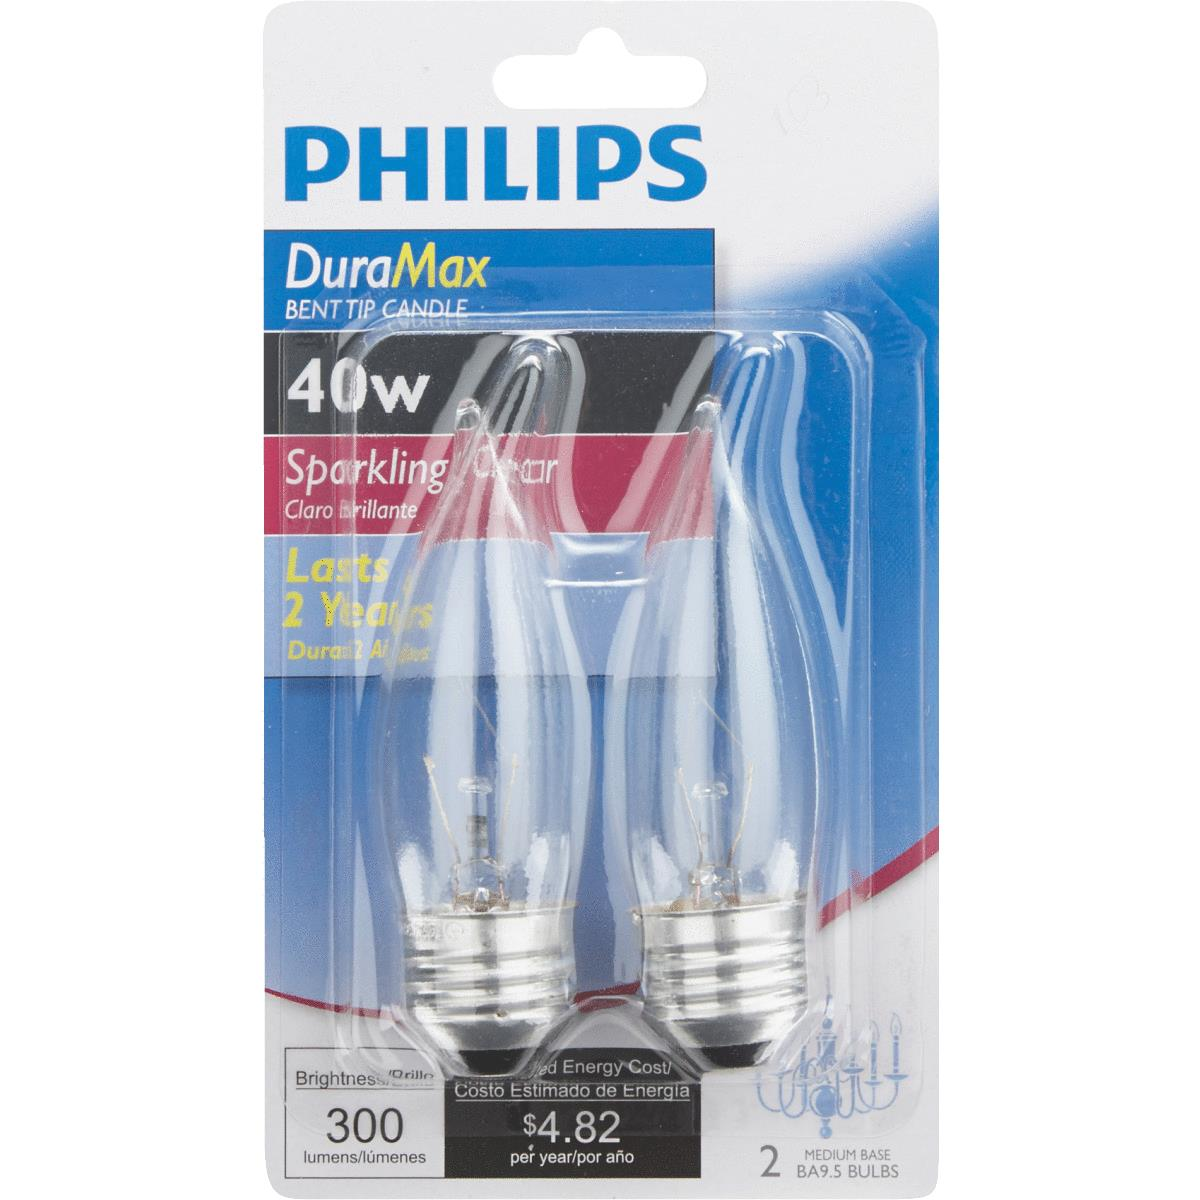 Philips DuraMax BA9.5 Incandescent Decorative Light Bulb